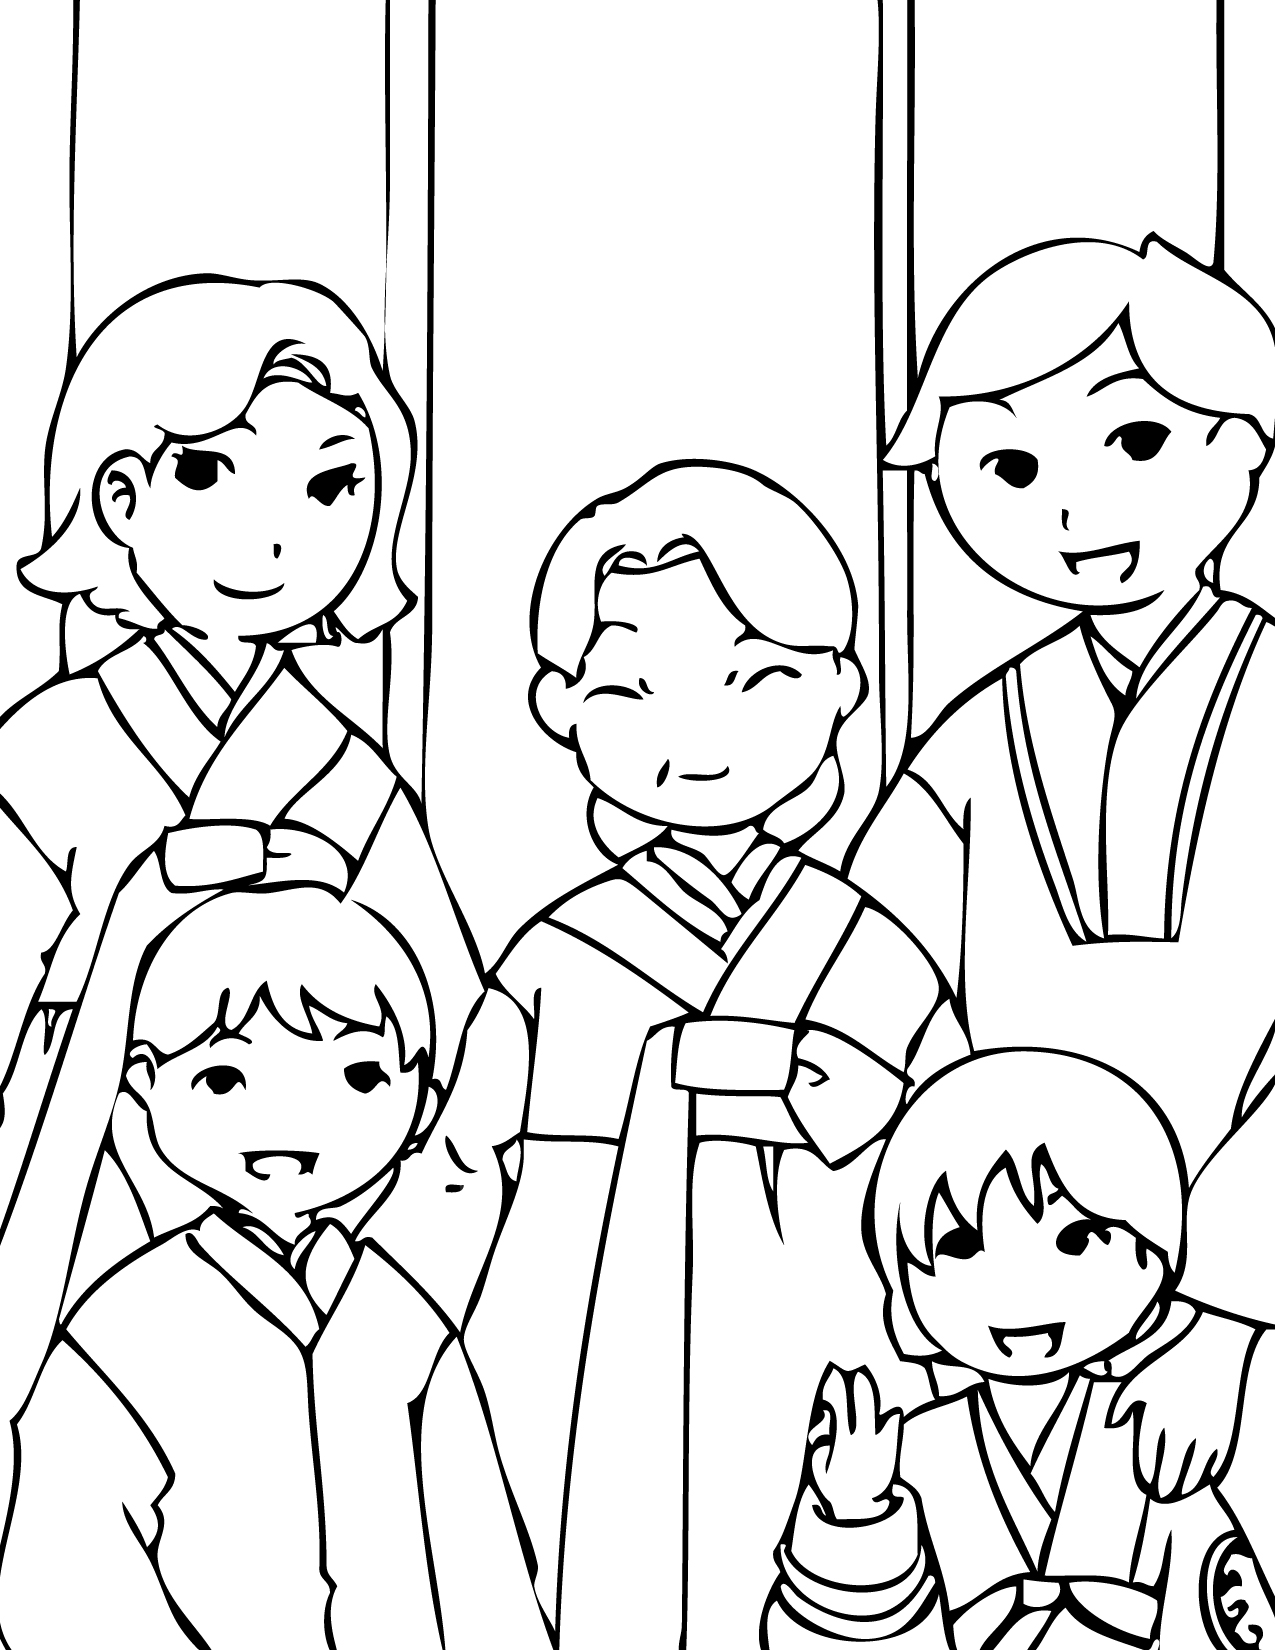 Korean Coloring Pages At Getcolorings